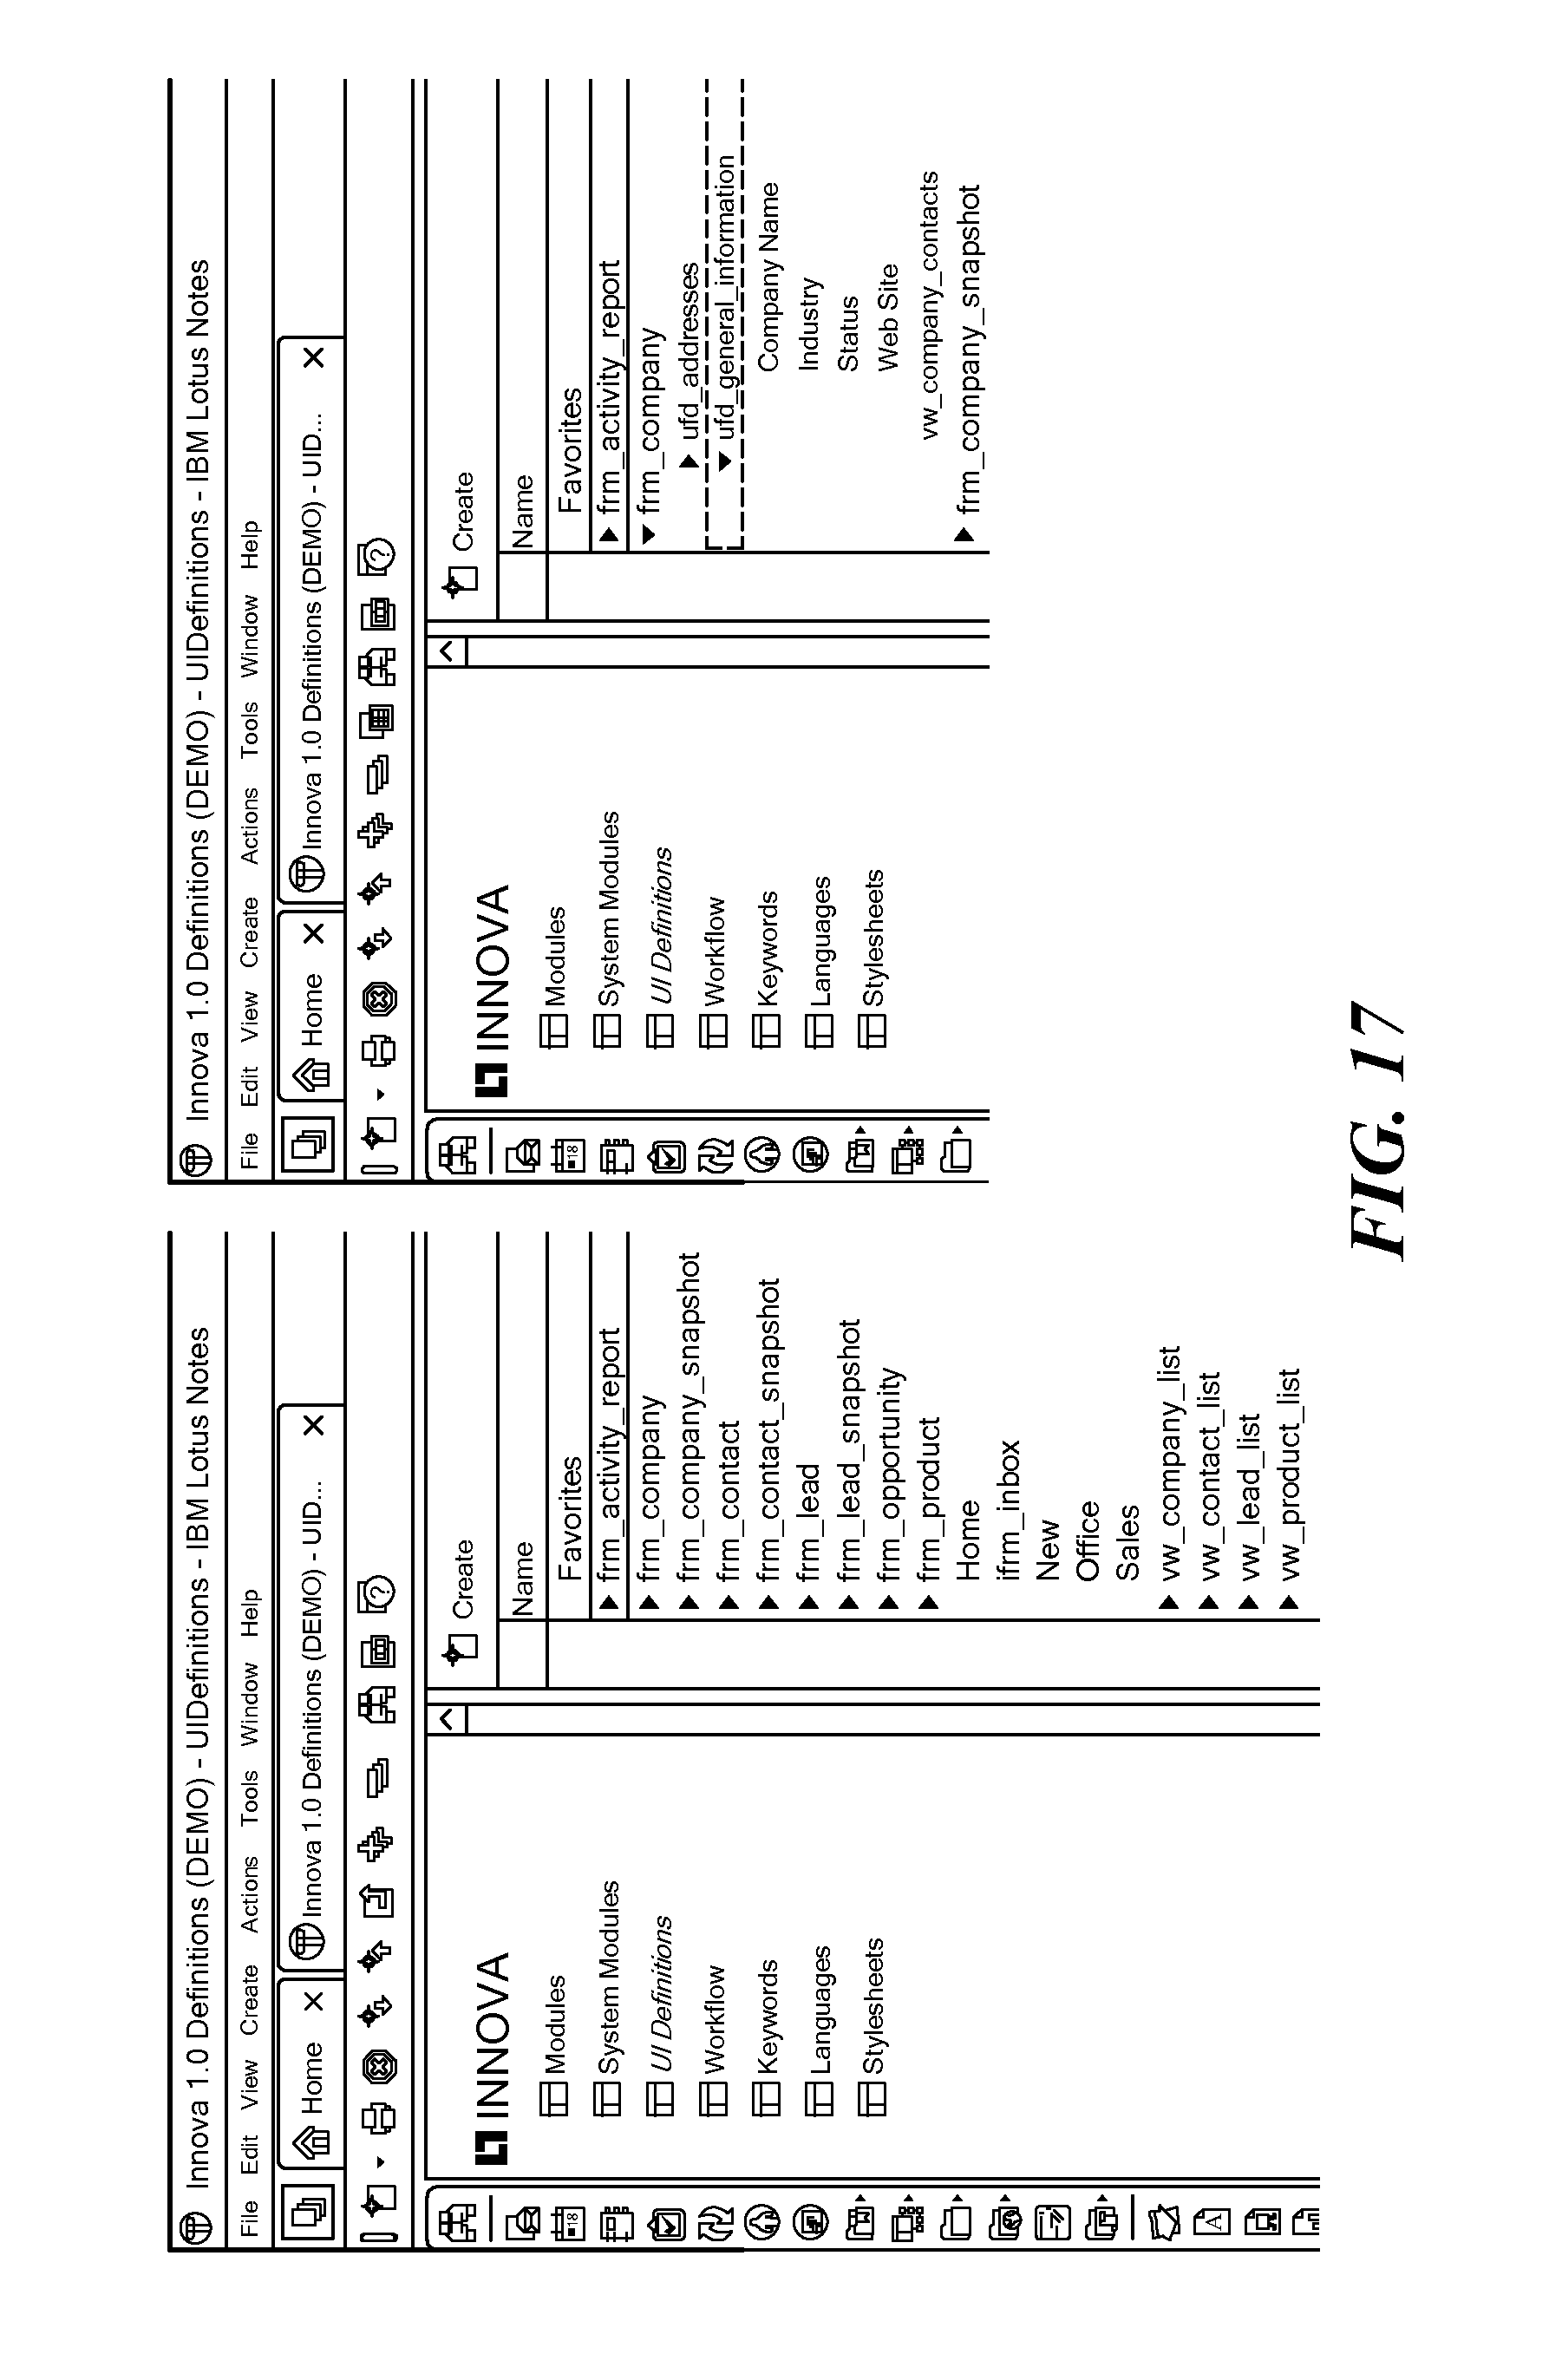 Contractor Invoice Excel Patent Us  Apparatus And Method For Constructing Data  Final Invoice Sample with Receipt For Chicken Patent Drawing How To Prepare An Invoice For Payment